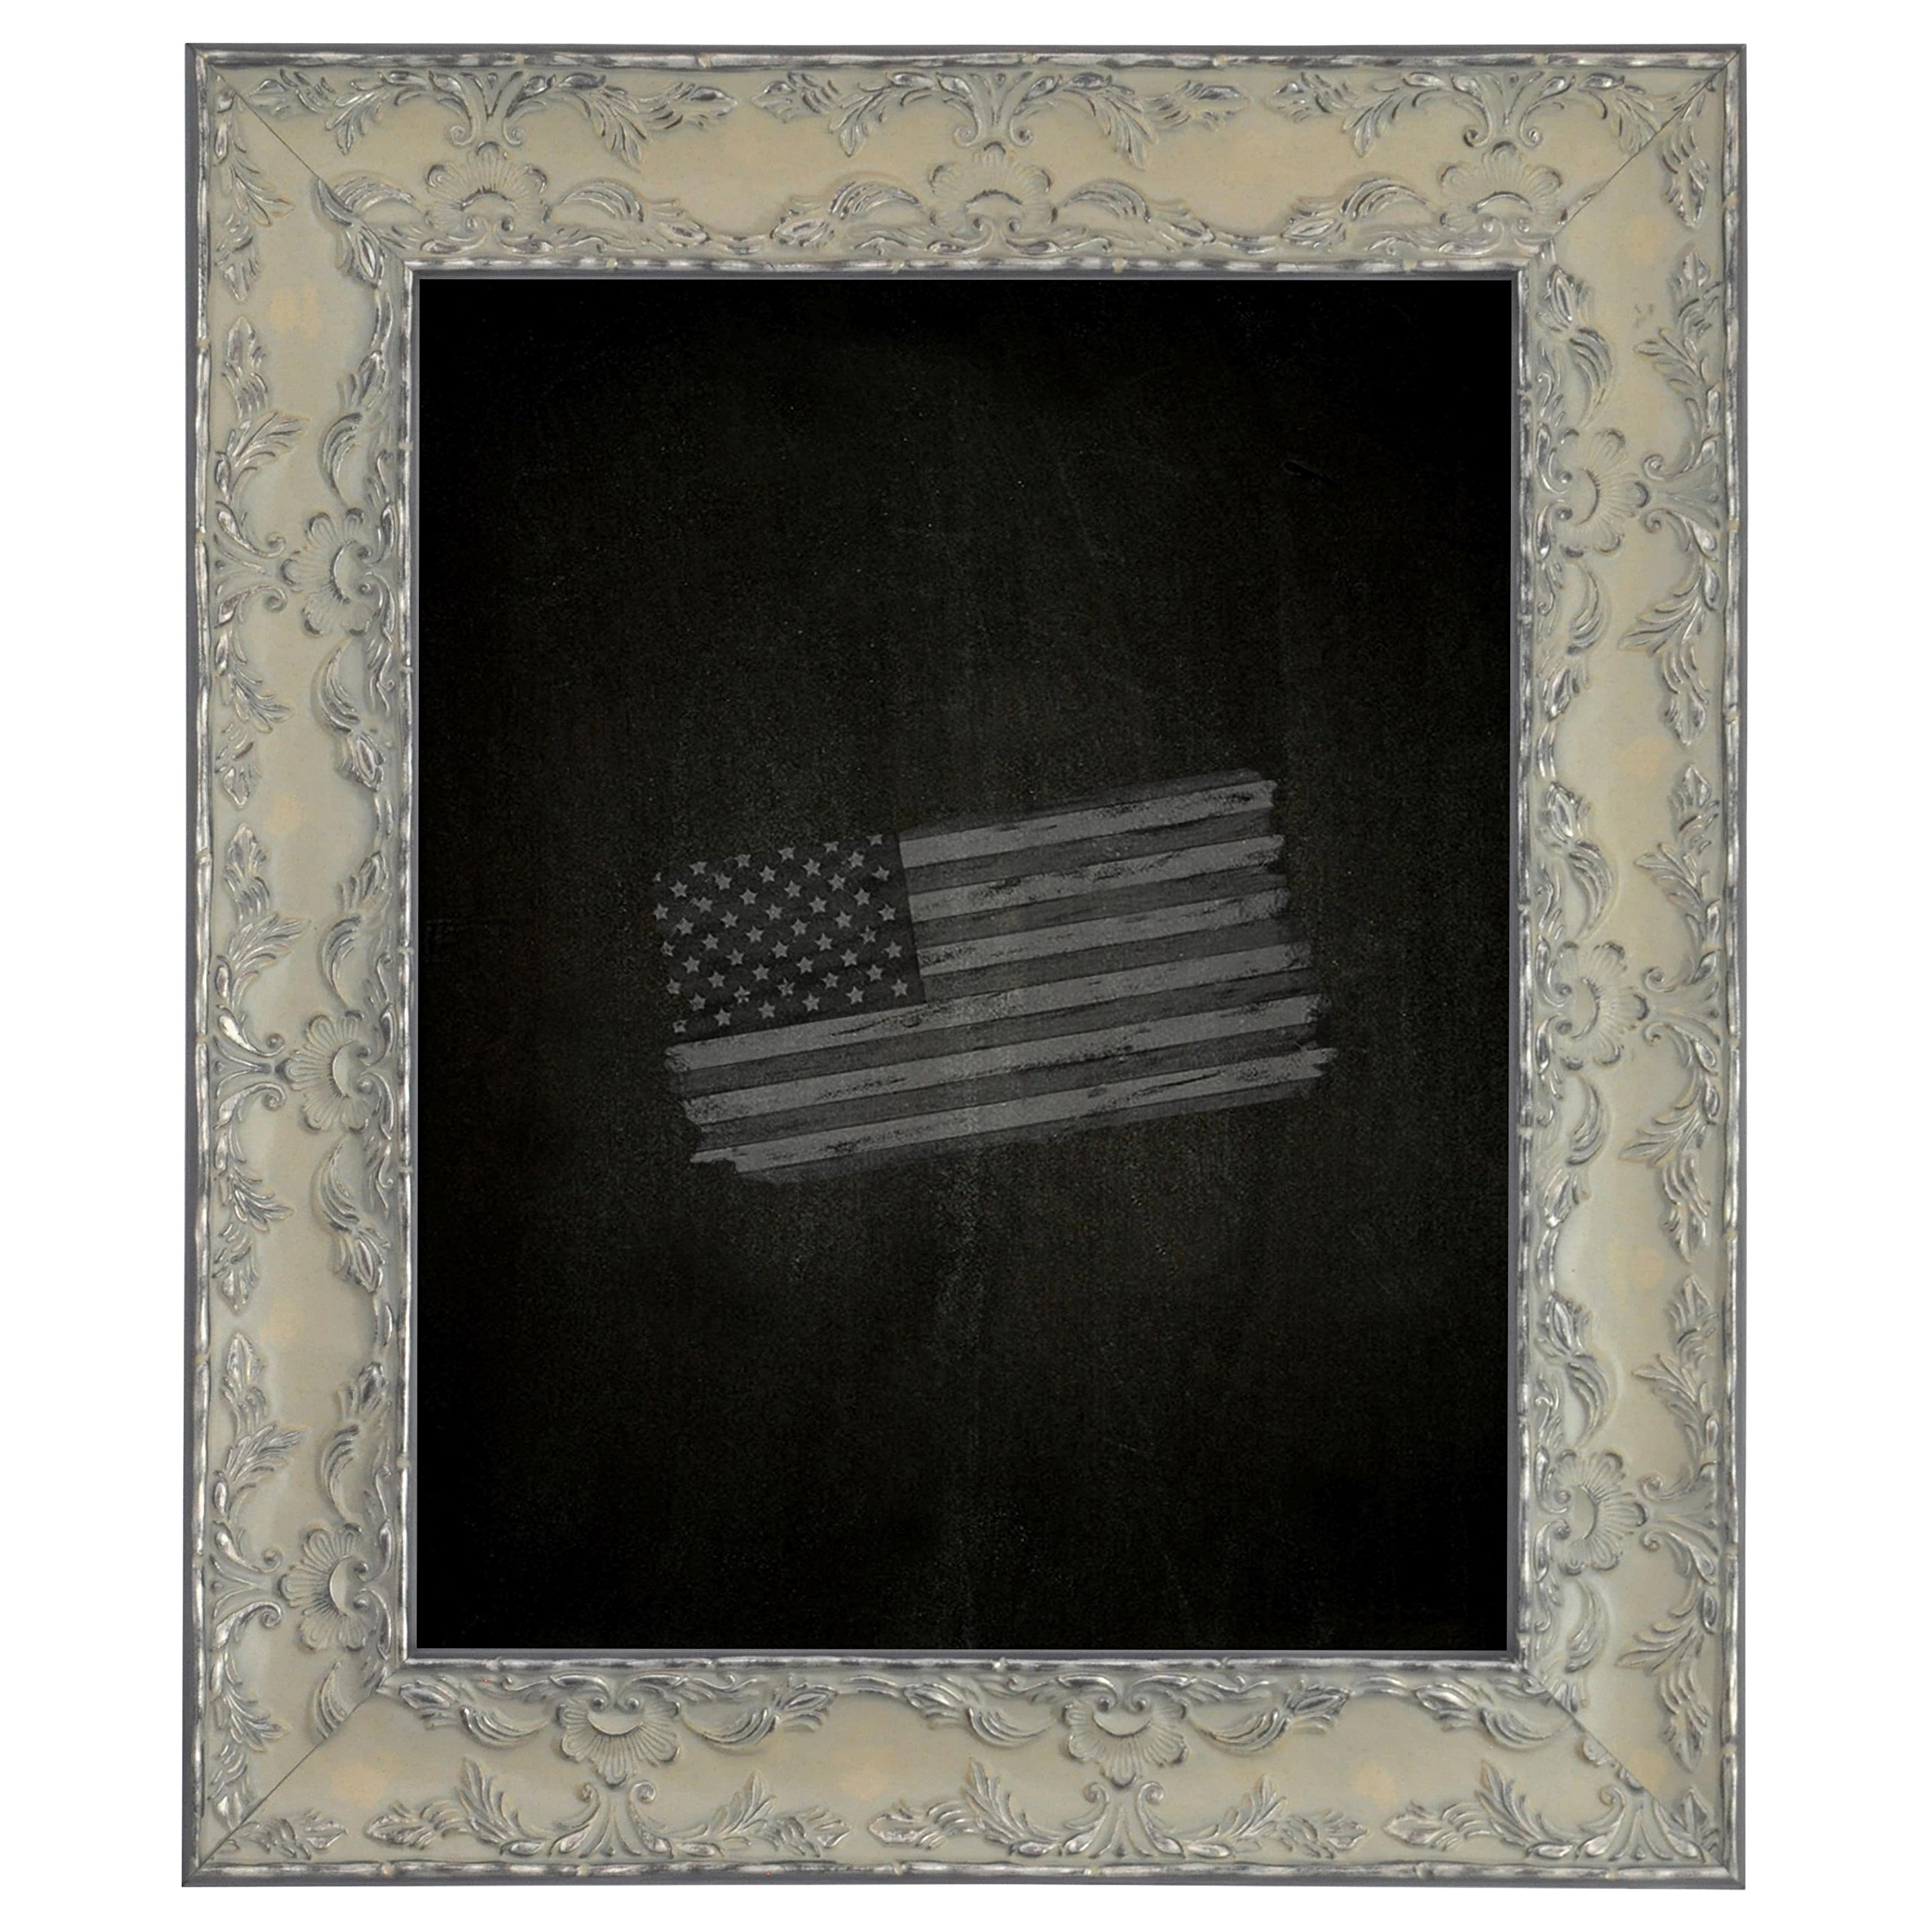 Rayne Mirrors American Made Rayne Maclaren Pewter Blackboard/ Chalkboard Exterior Size: 30 x 66 by Rayne Mirrors